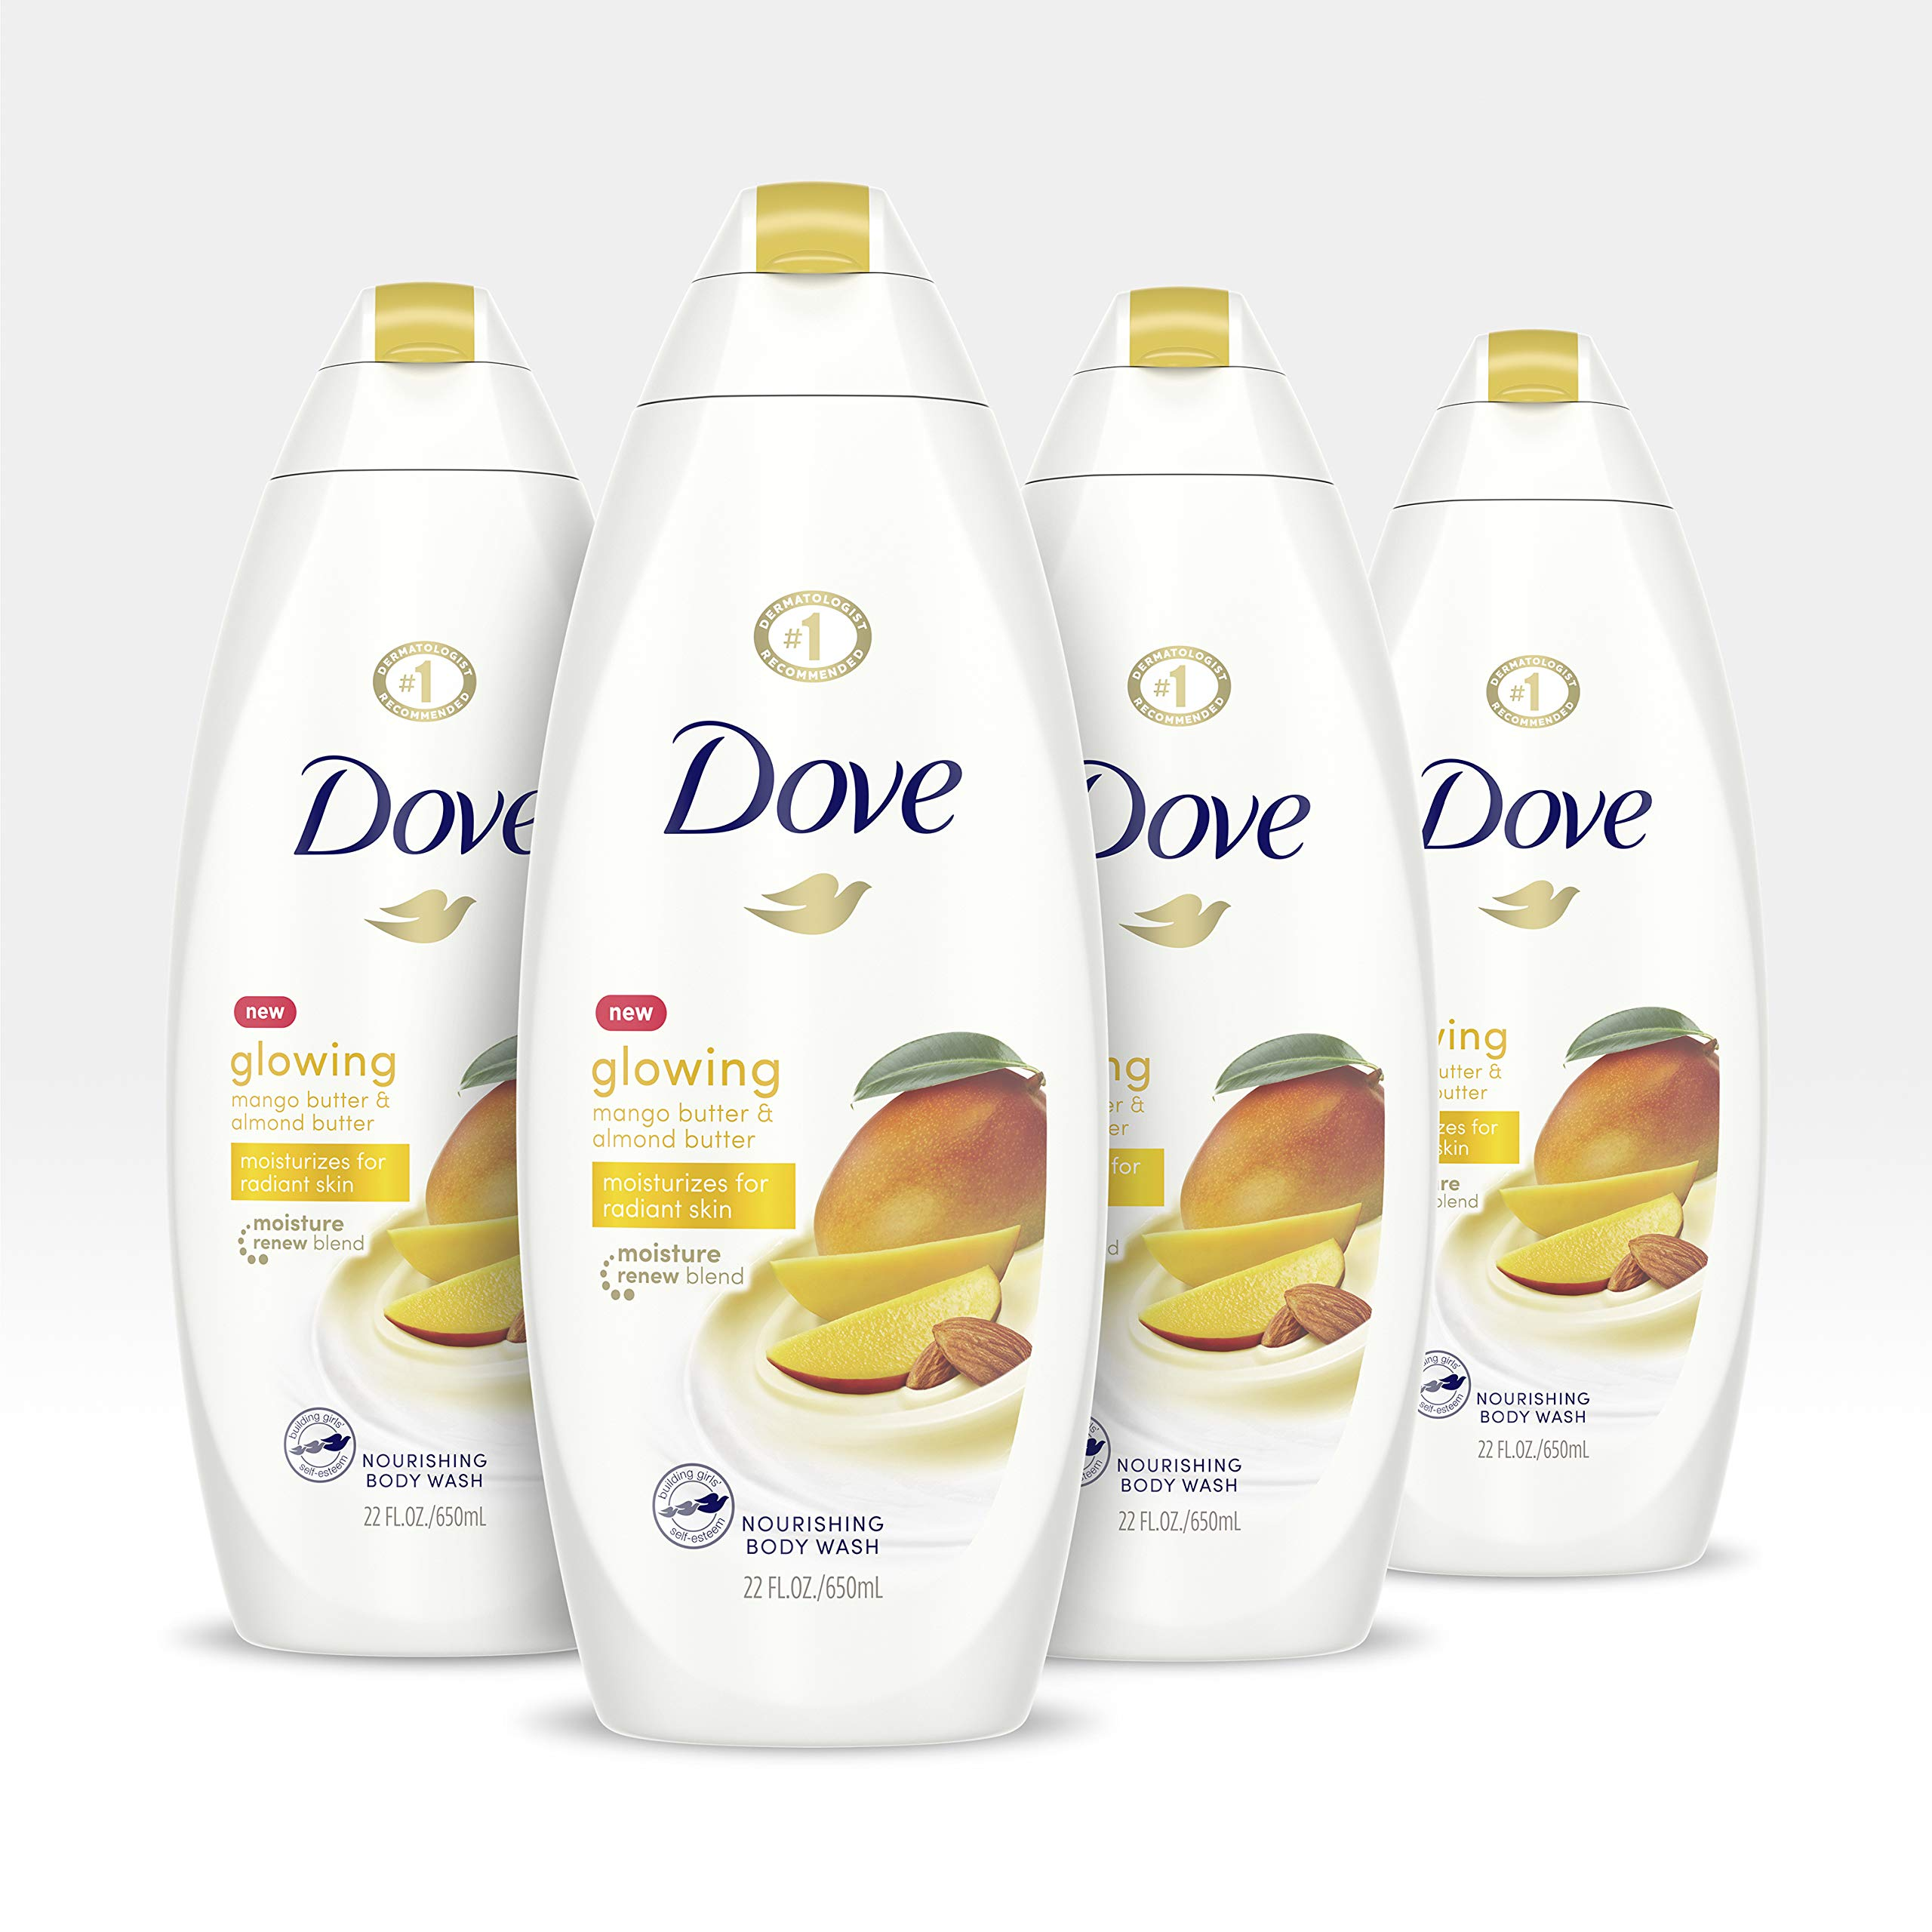 Mua Dove Glowing Body Wash Revitalizes And Refreshes Skin Mango Butter And Almond Butter Sulfate Free Body Wash 22 Fl Oz Pack Of 4 Tren Amazon Mỹ Chinh Hang 2020 Fado